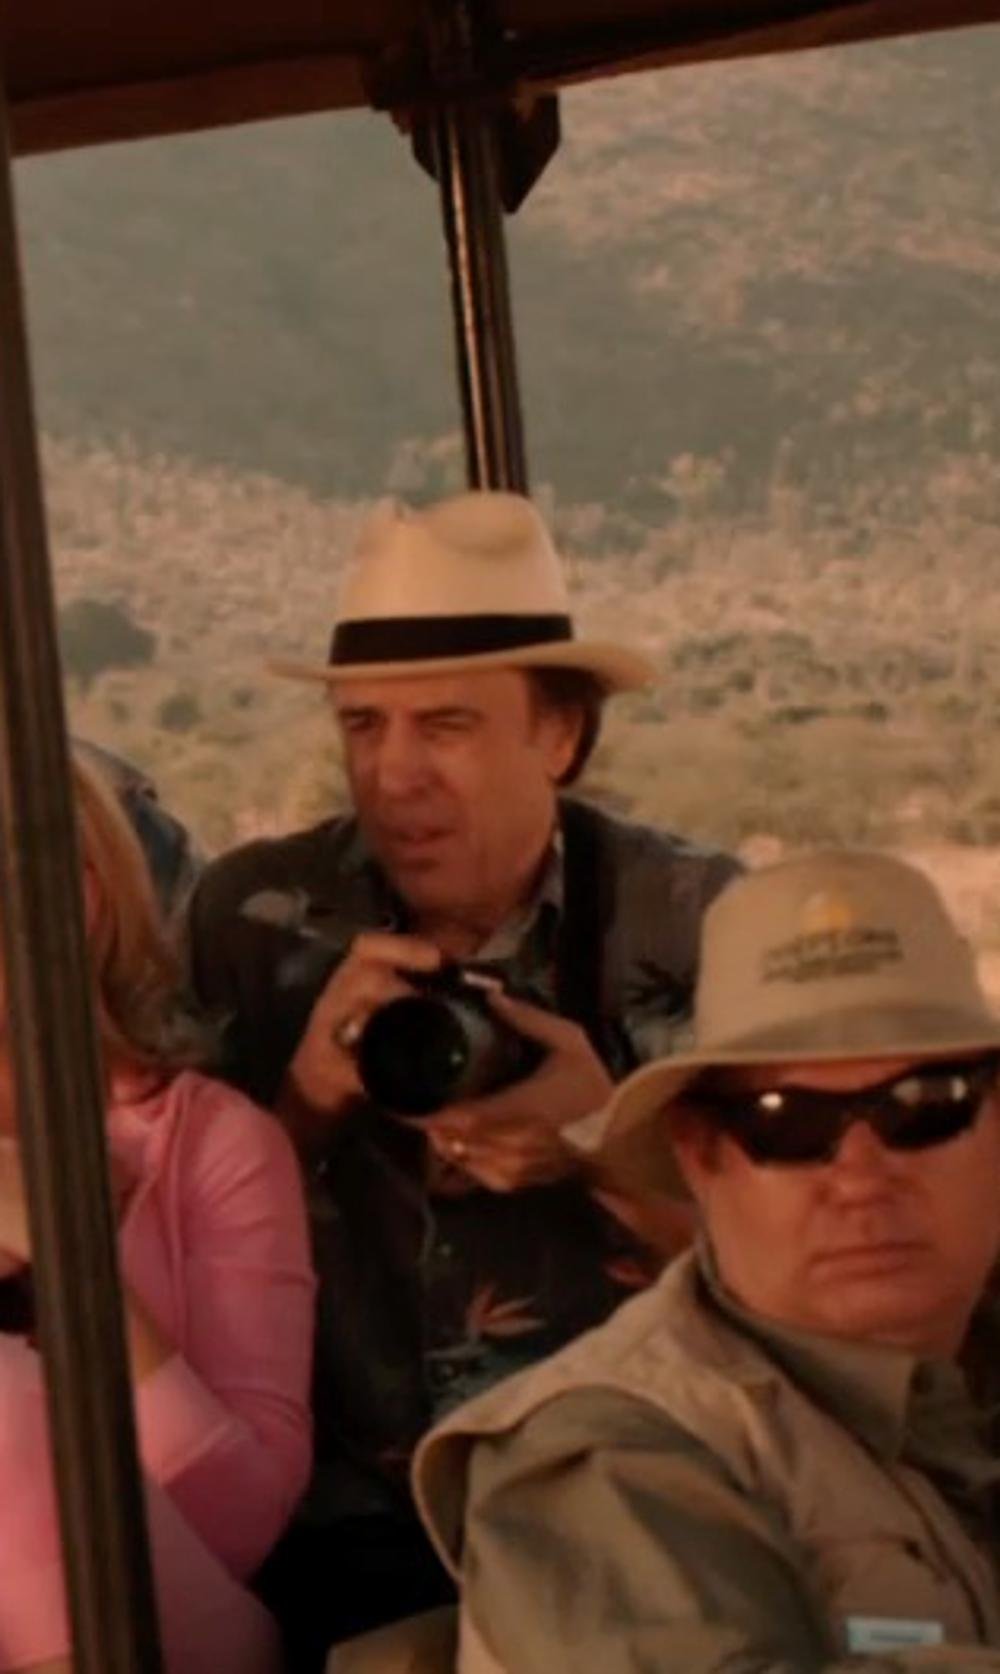 Kevin Nealon with Goorin Brothers 'Fine Day' Straw Fedora in Blended